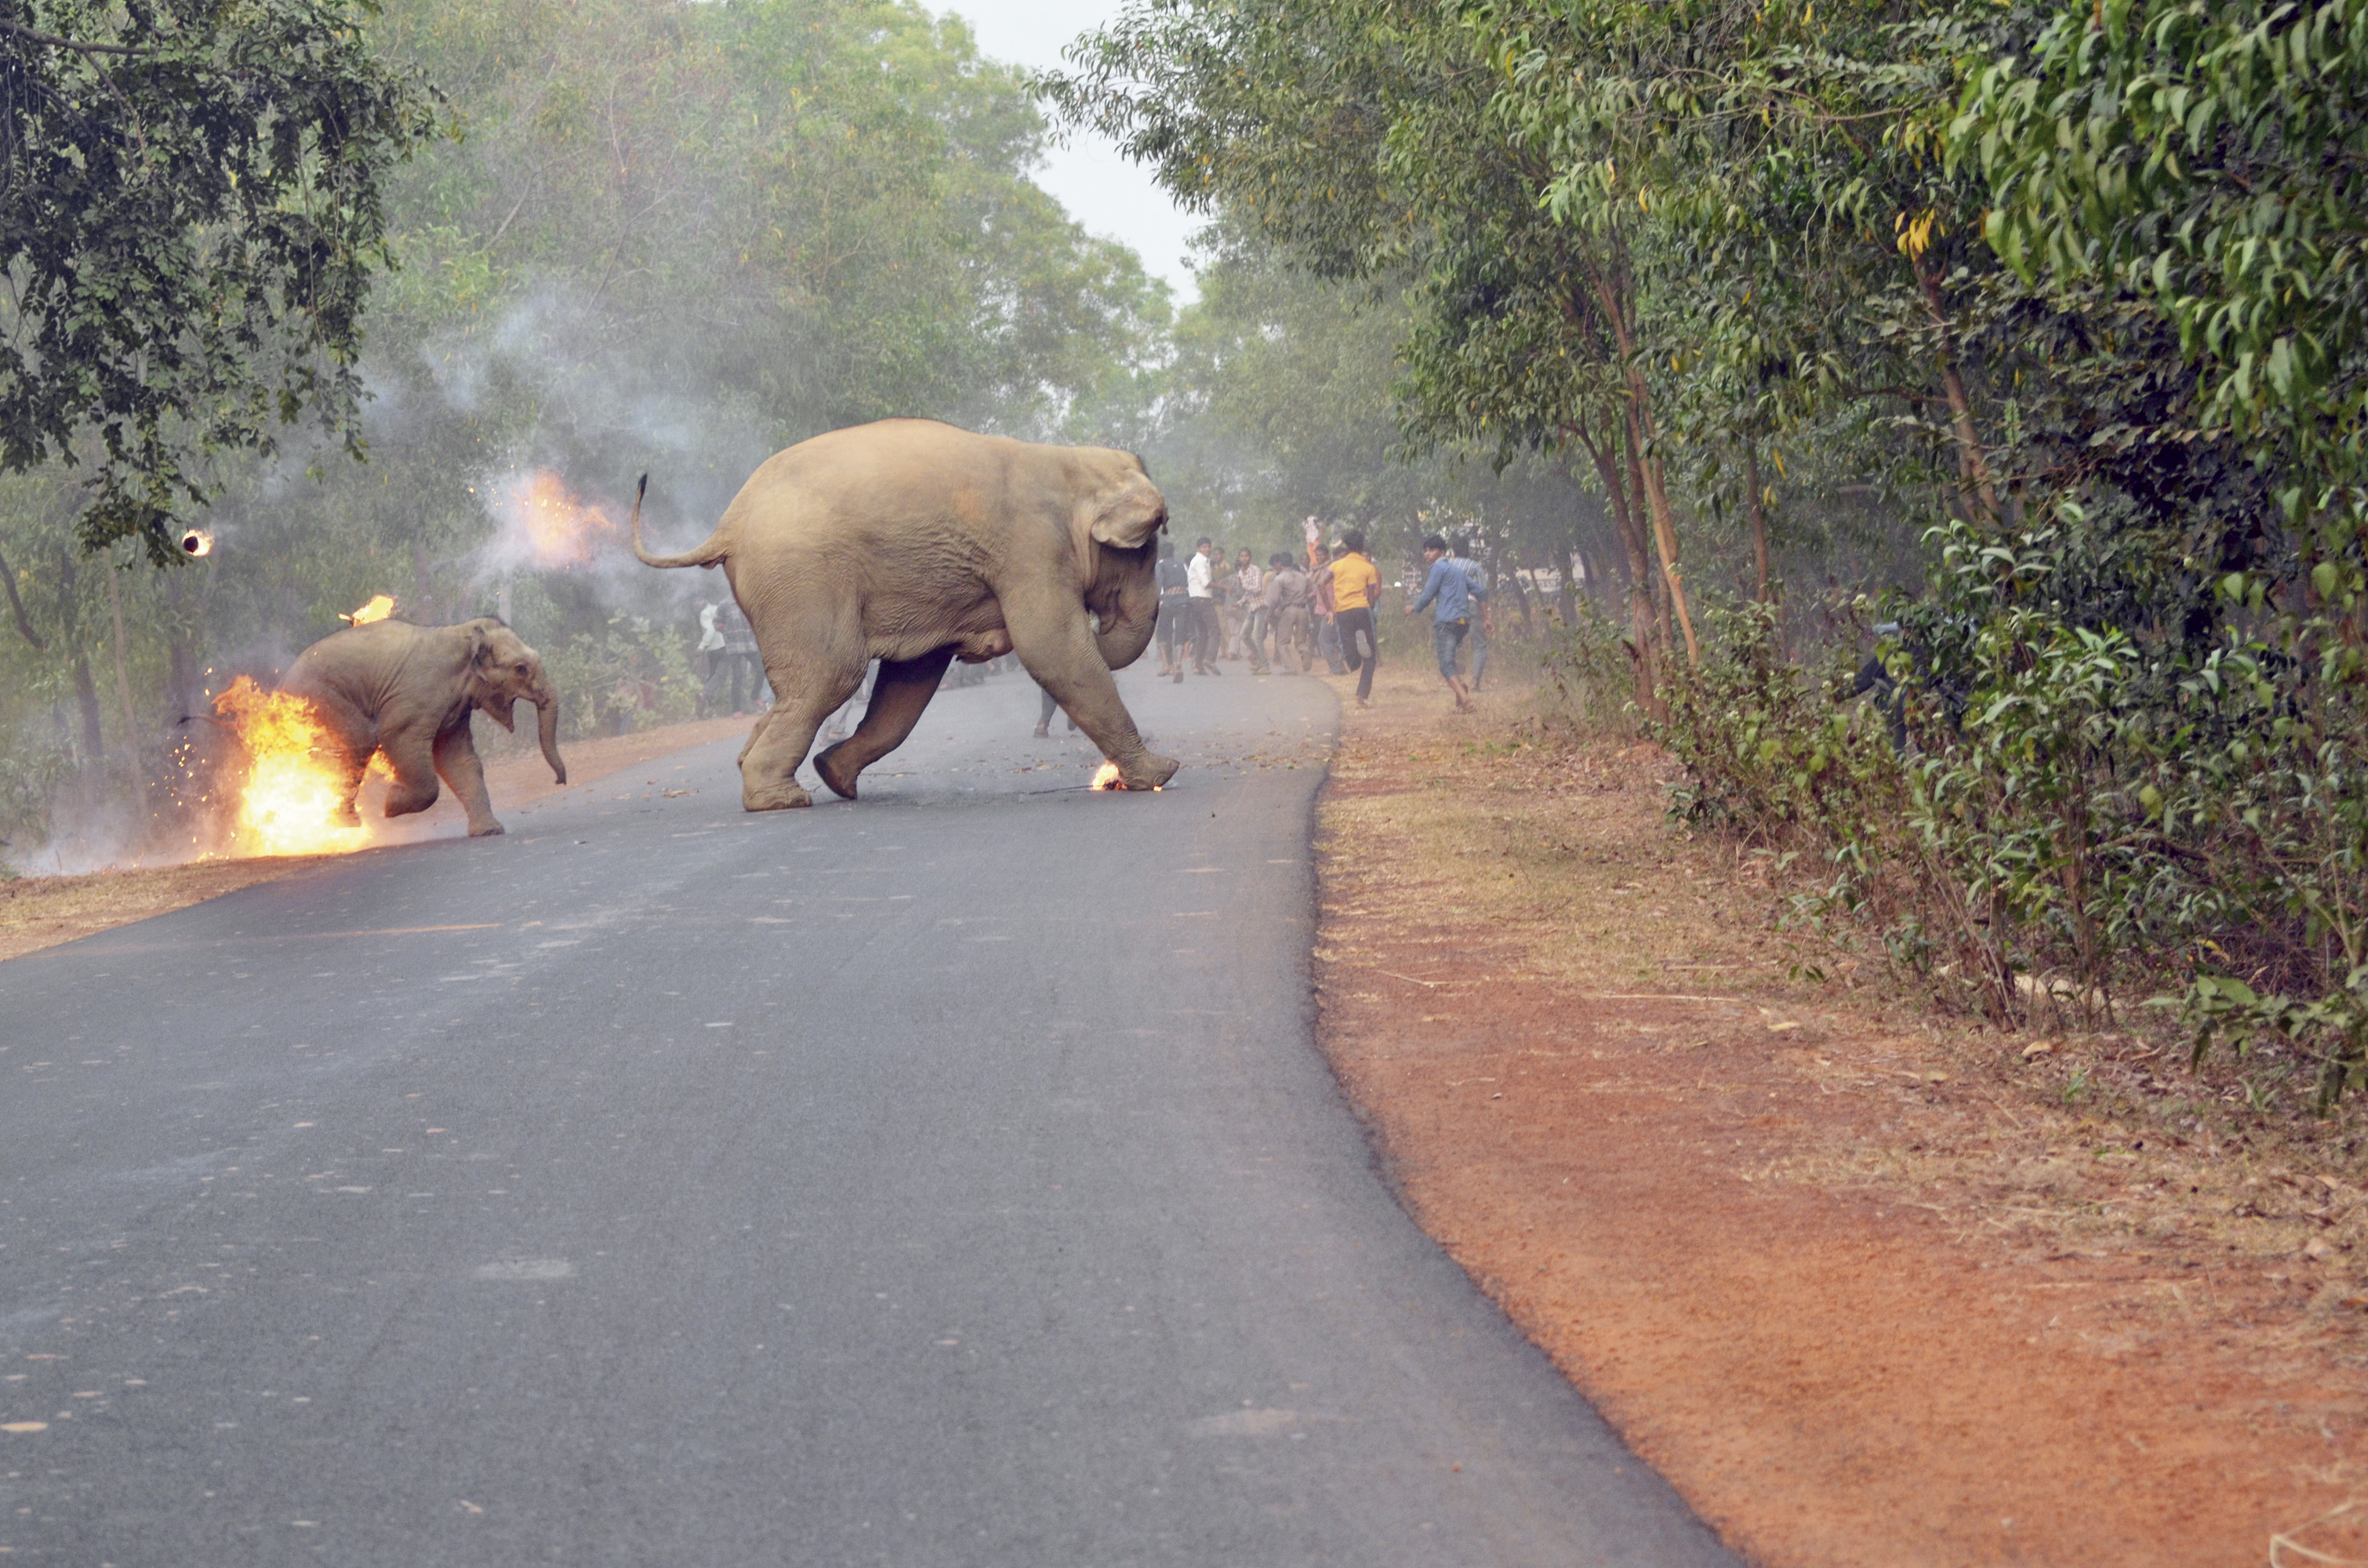 Sanctuary Wildlife Photography Awards 2017 Award For Picture Showing Human Elephant Conflict